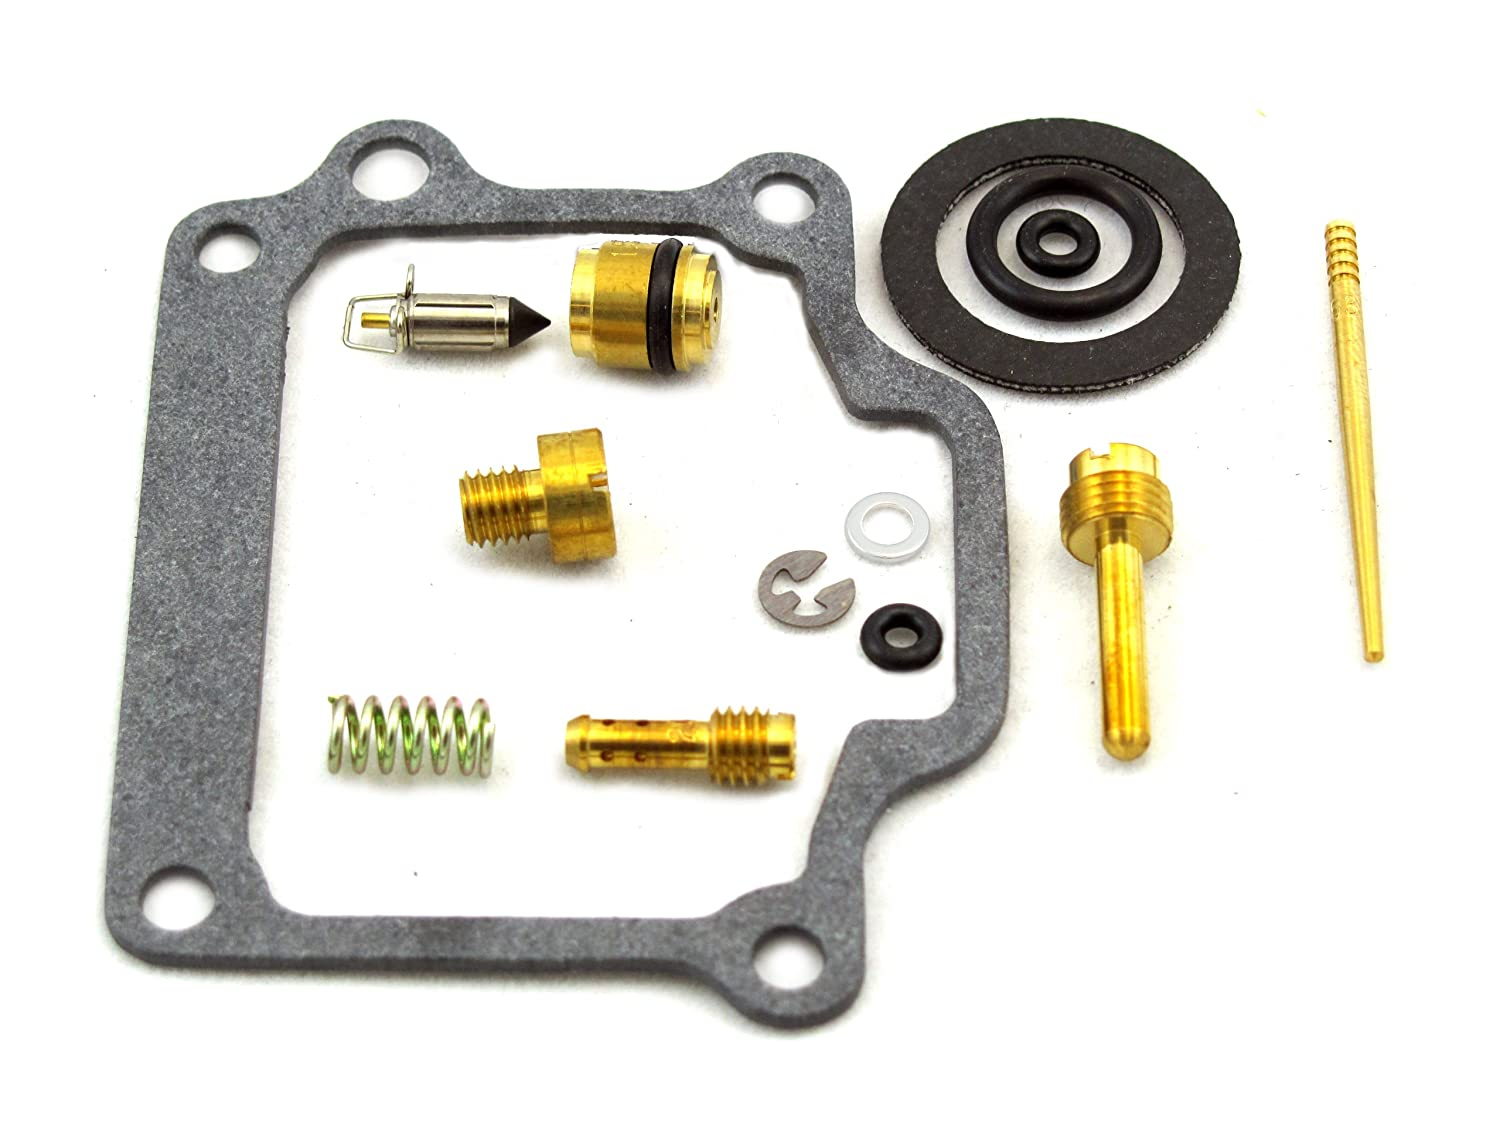 Freedom County ATV FC03210 Carburetor Rebuild Kit for Suzuki LT80